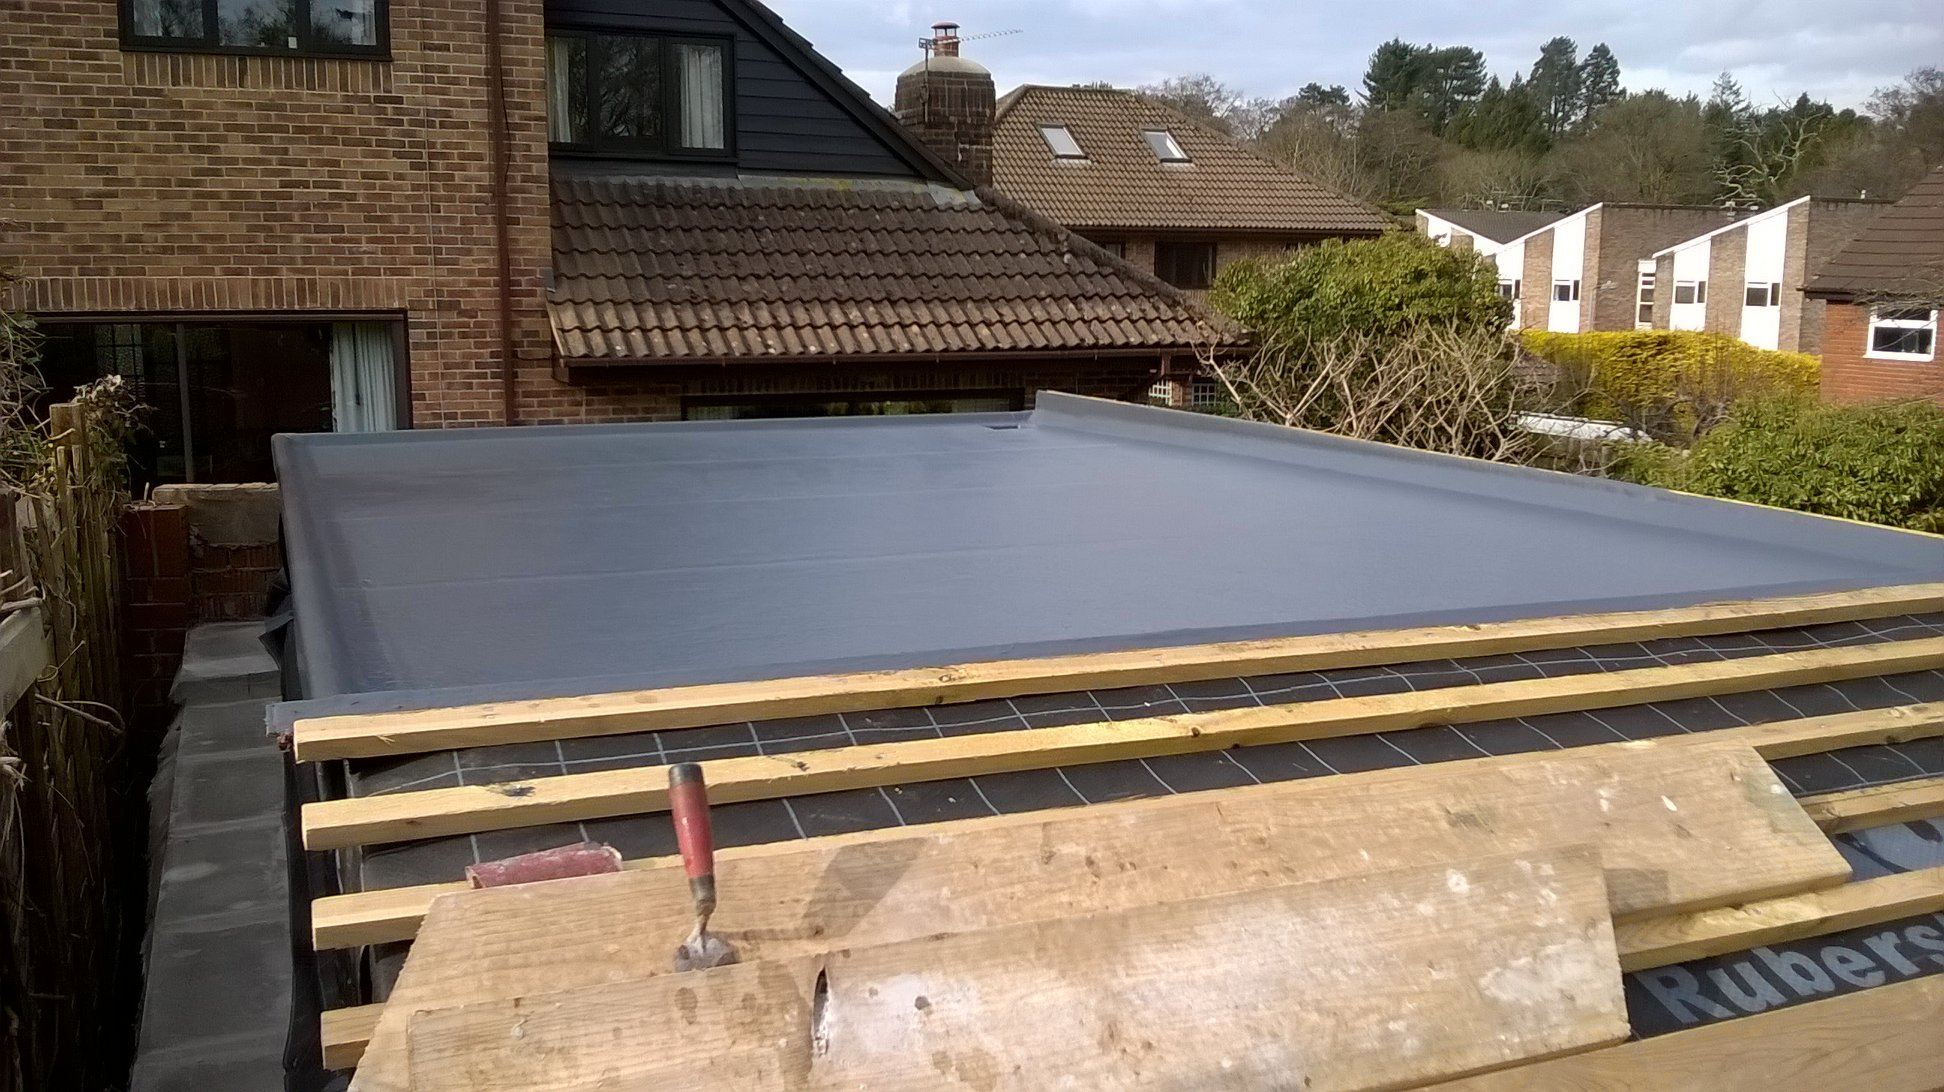 Cardiff fibreglass roof complete